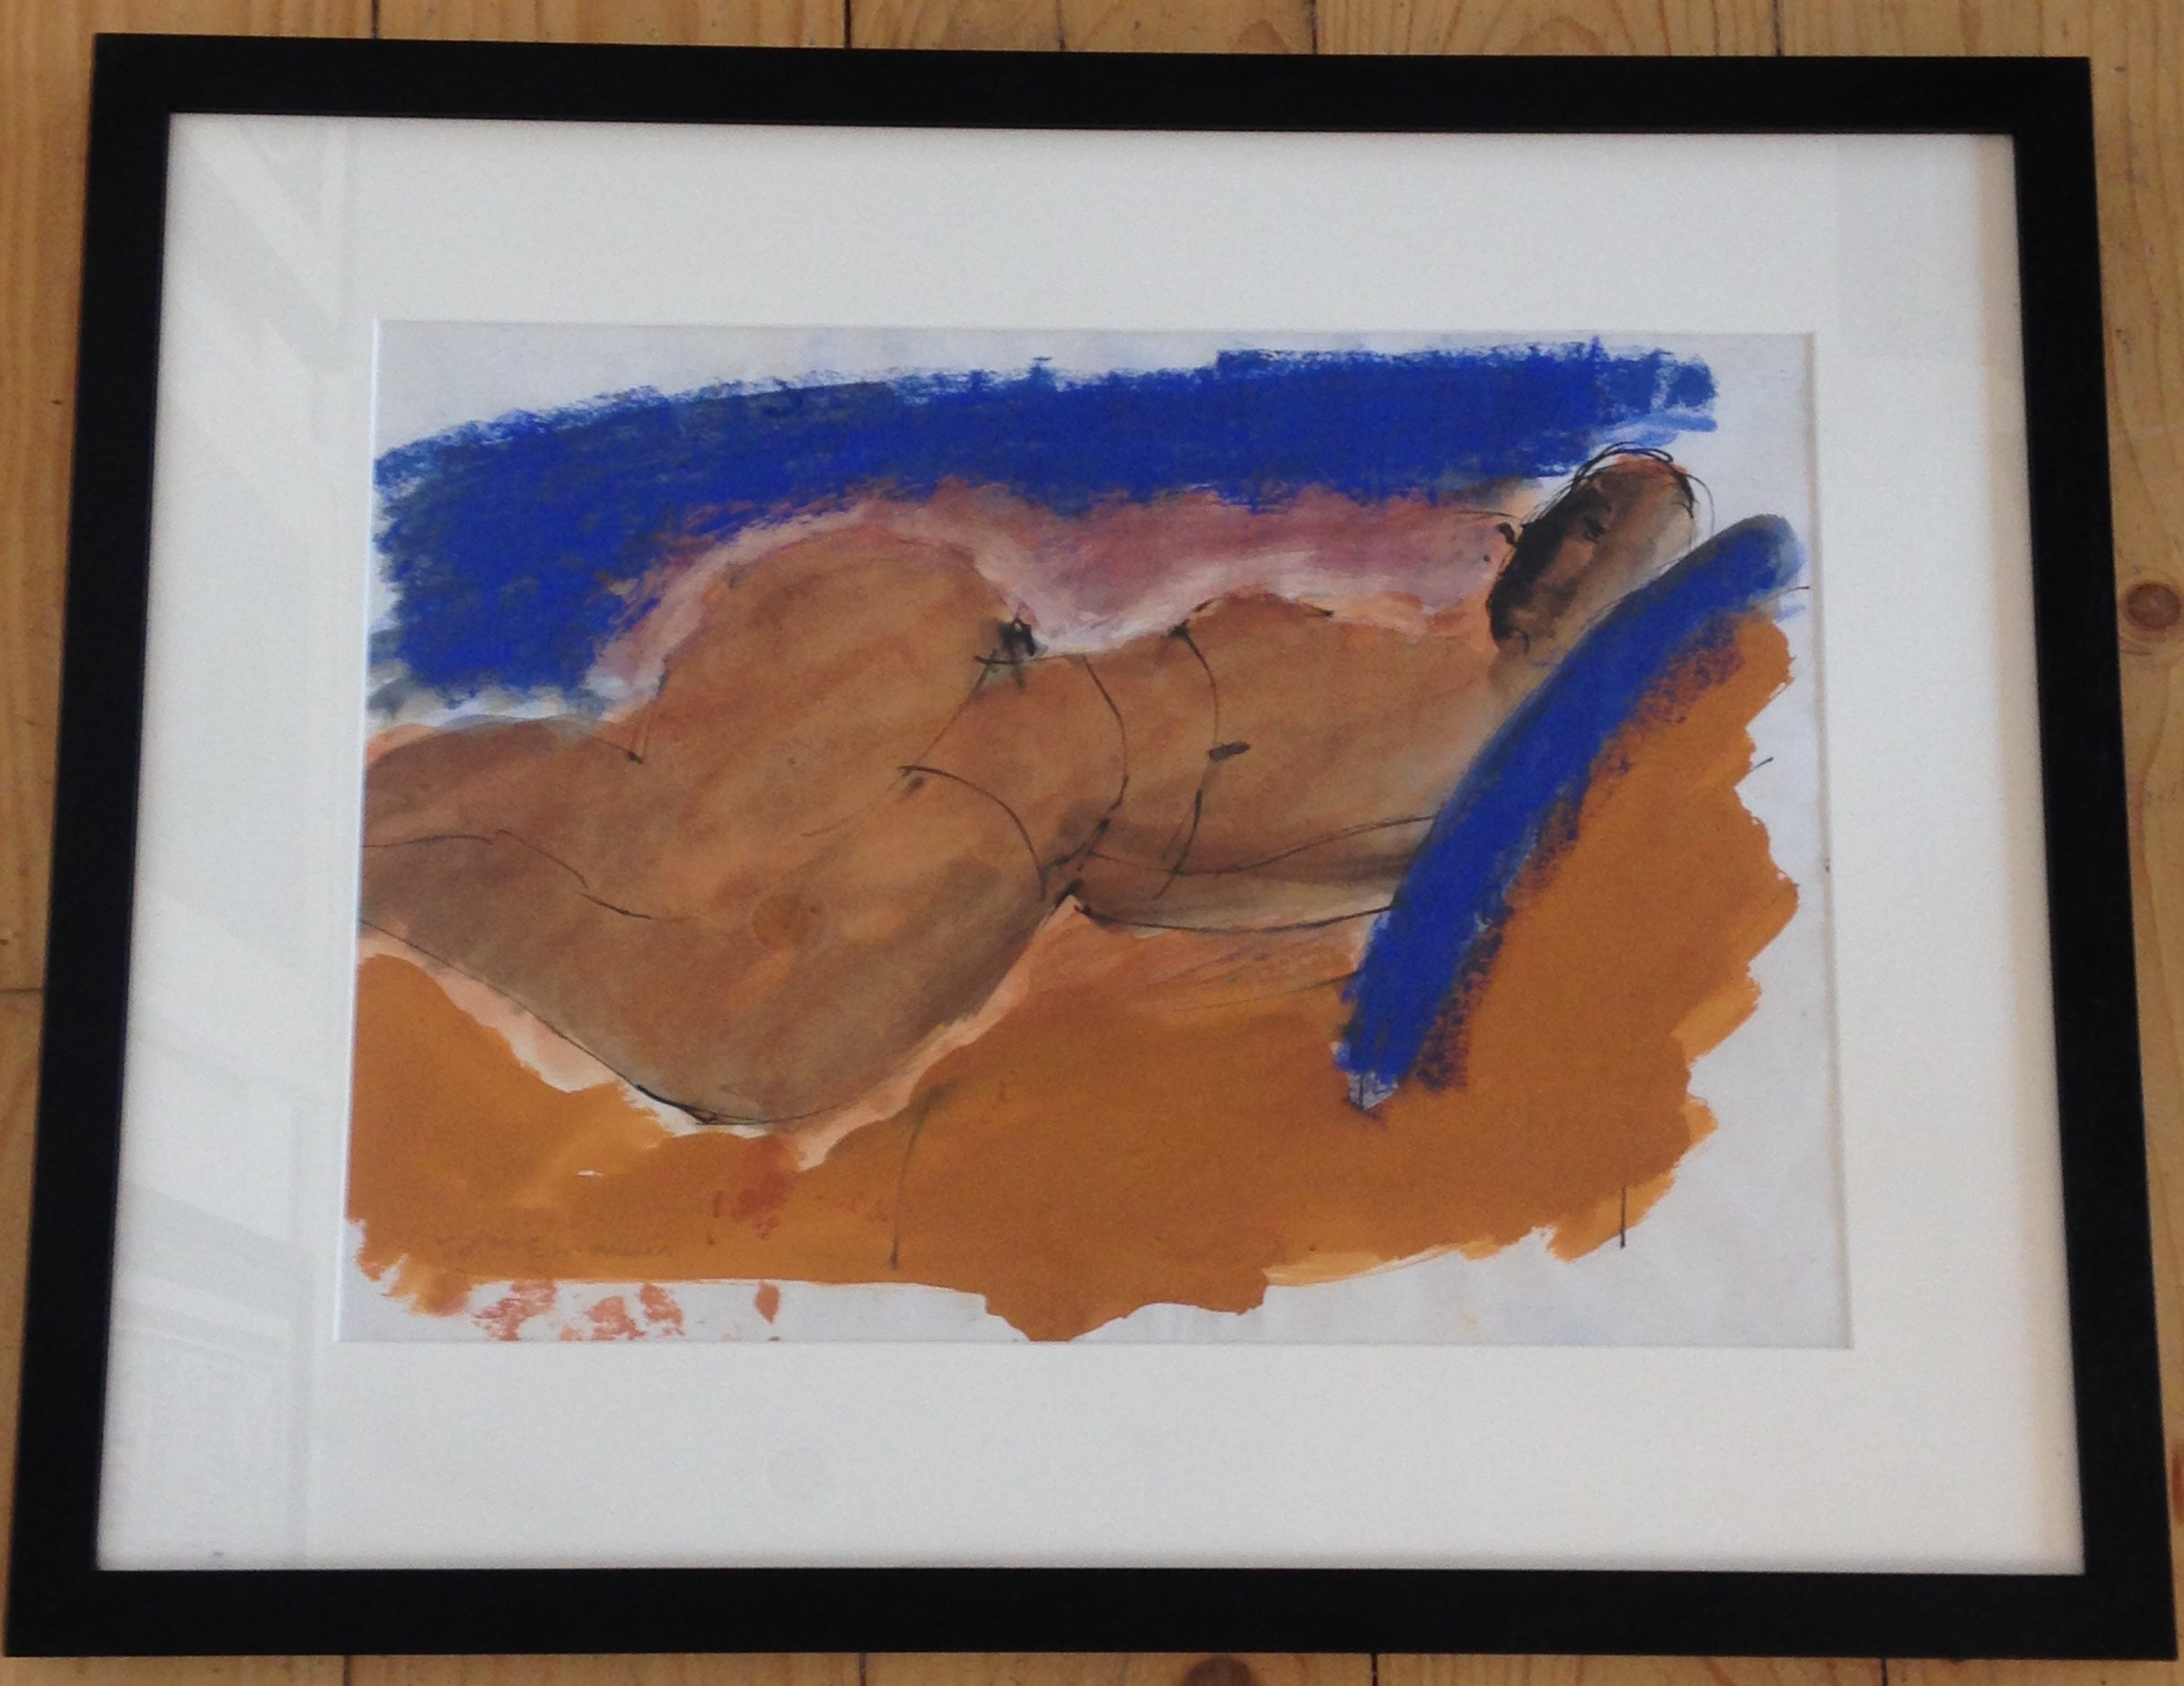 John Emanuel - Reclining Figure - original painting